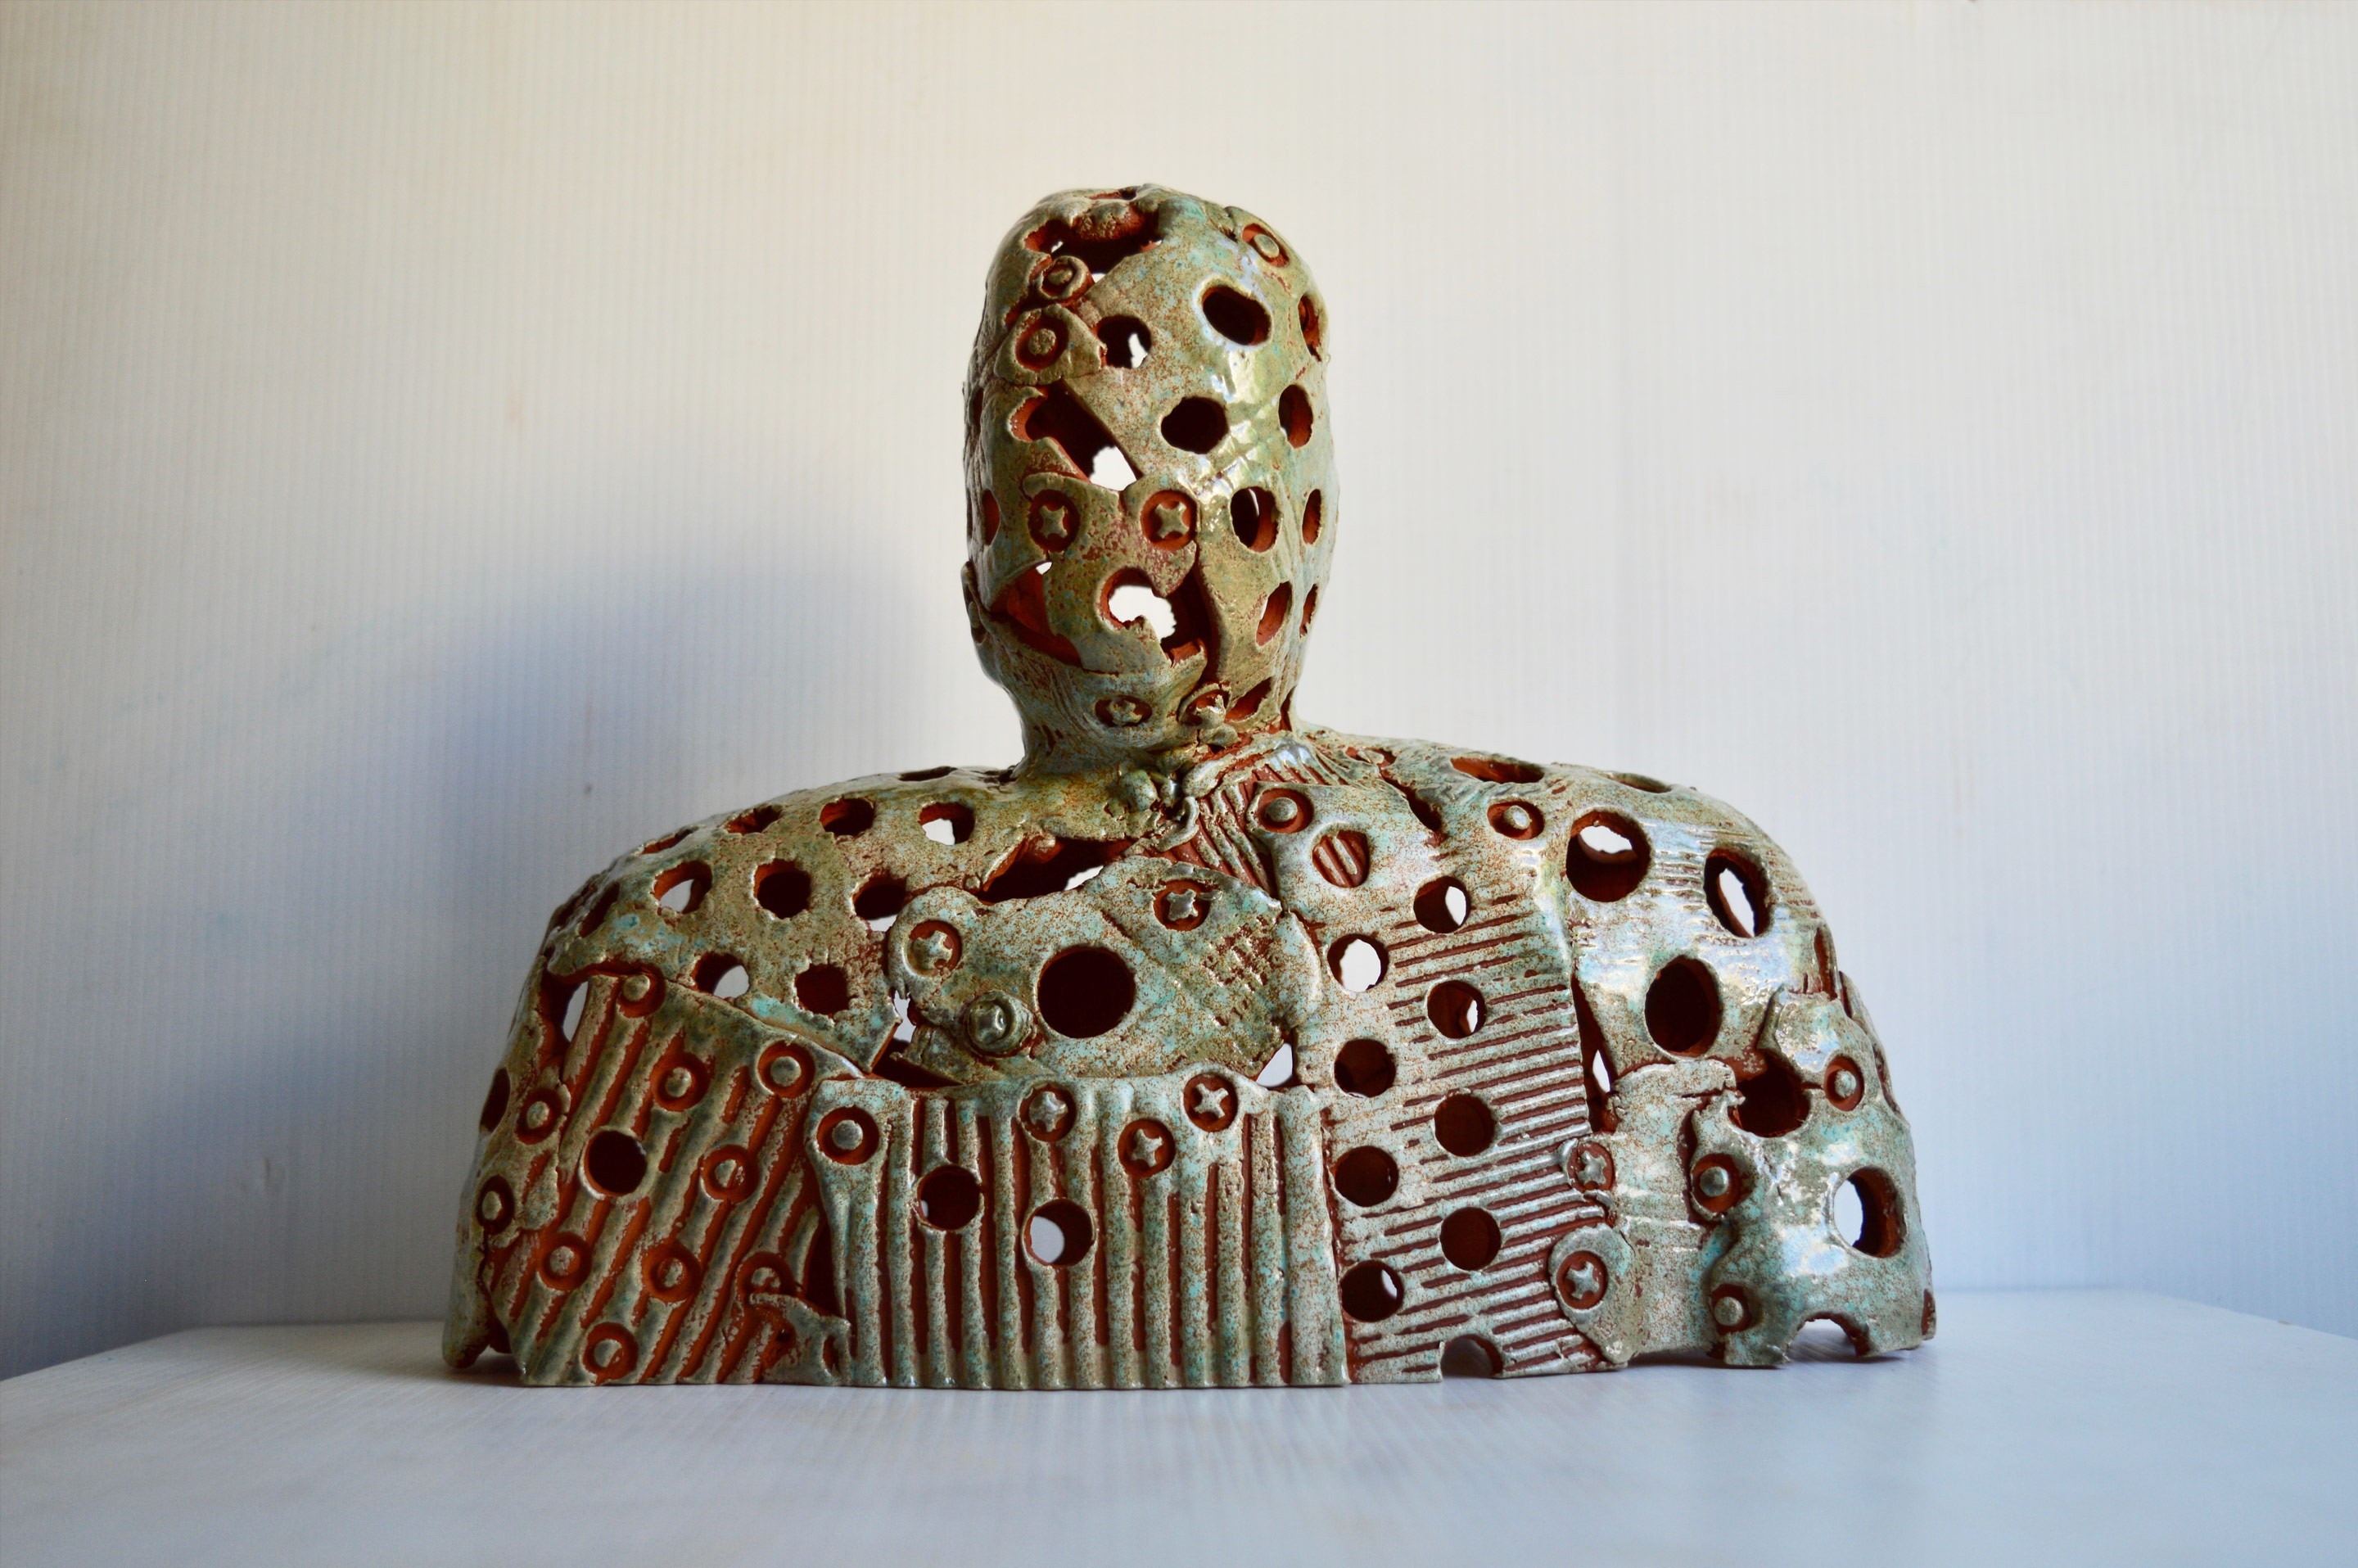 A glazed teracotta figure. One of the figures from 'Enlightenment', a rolling project installation in mixed media